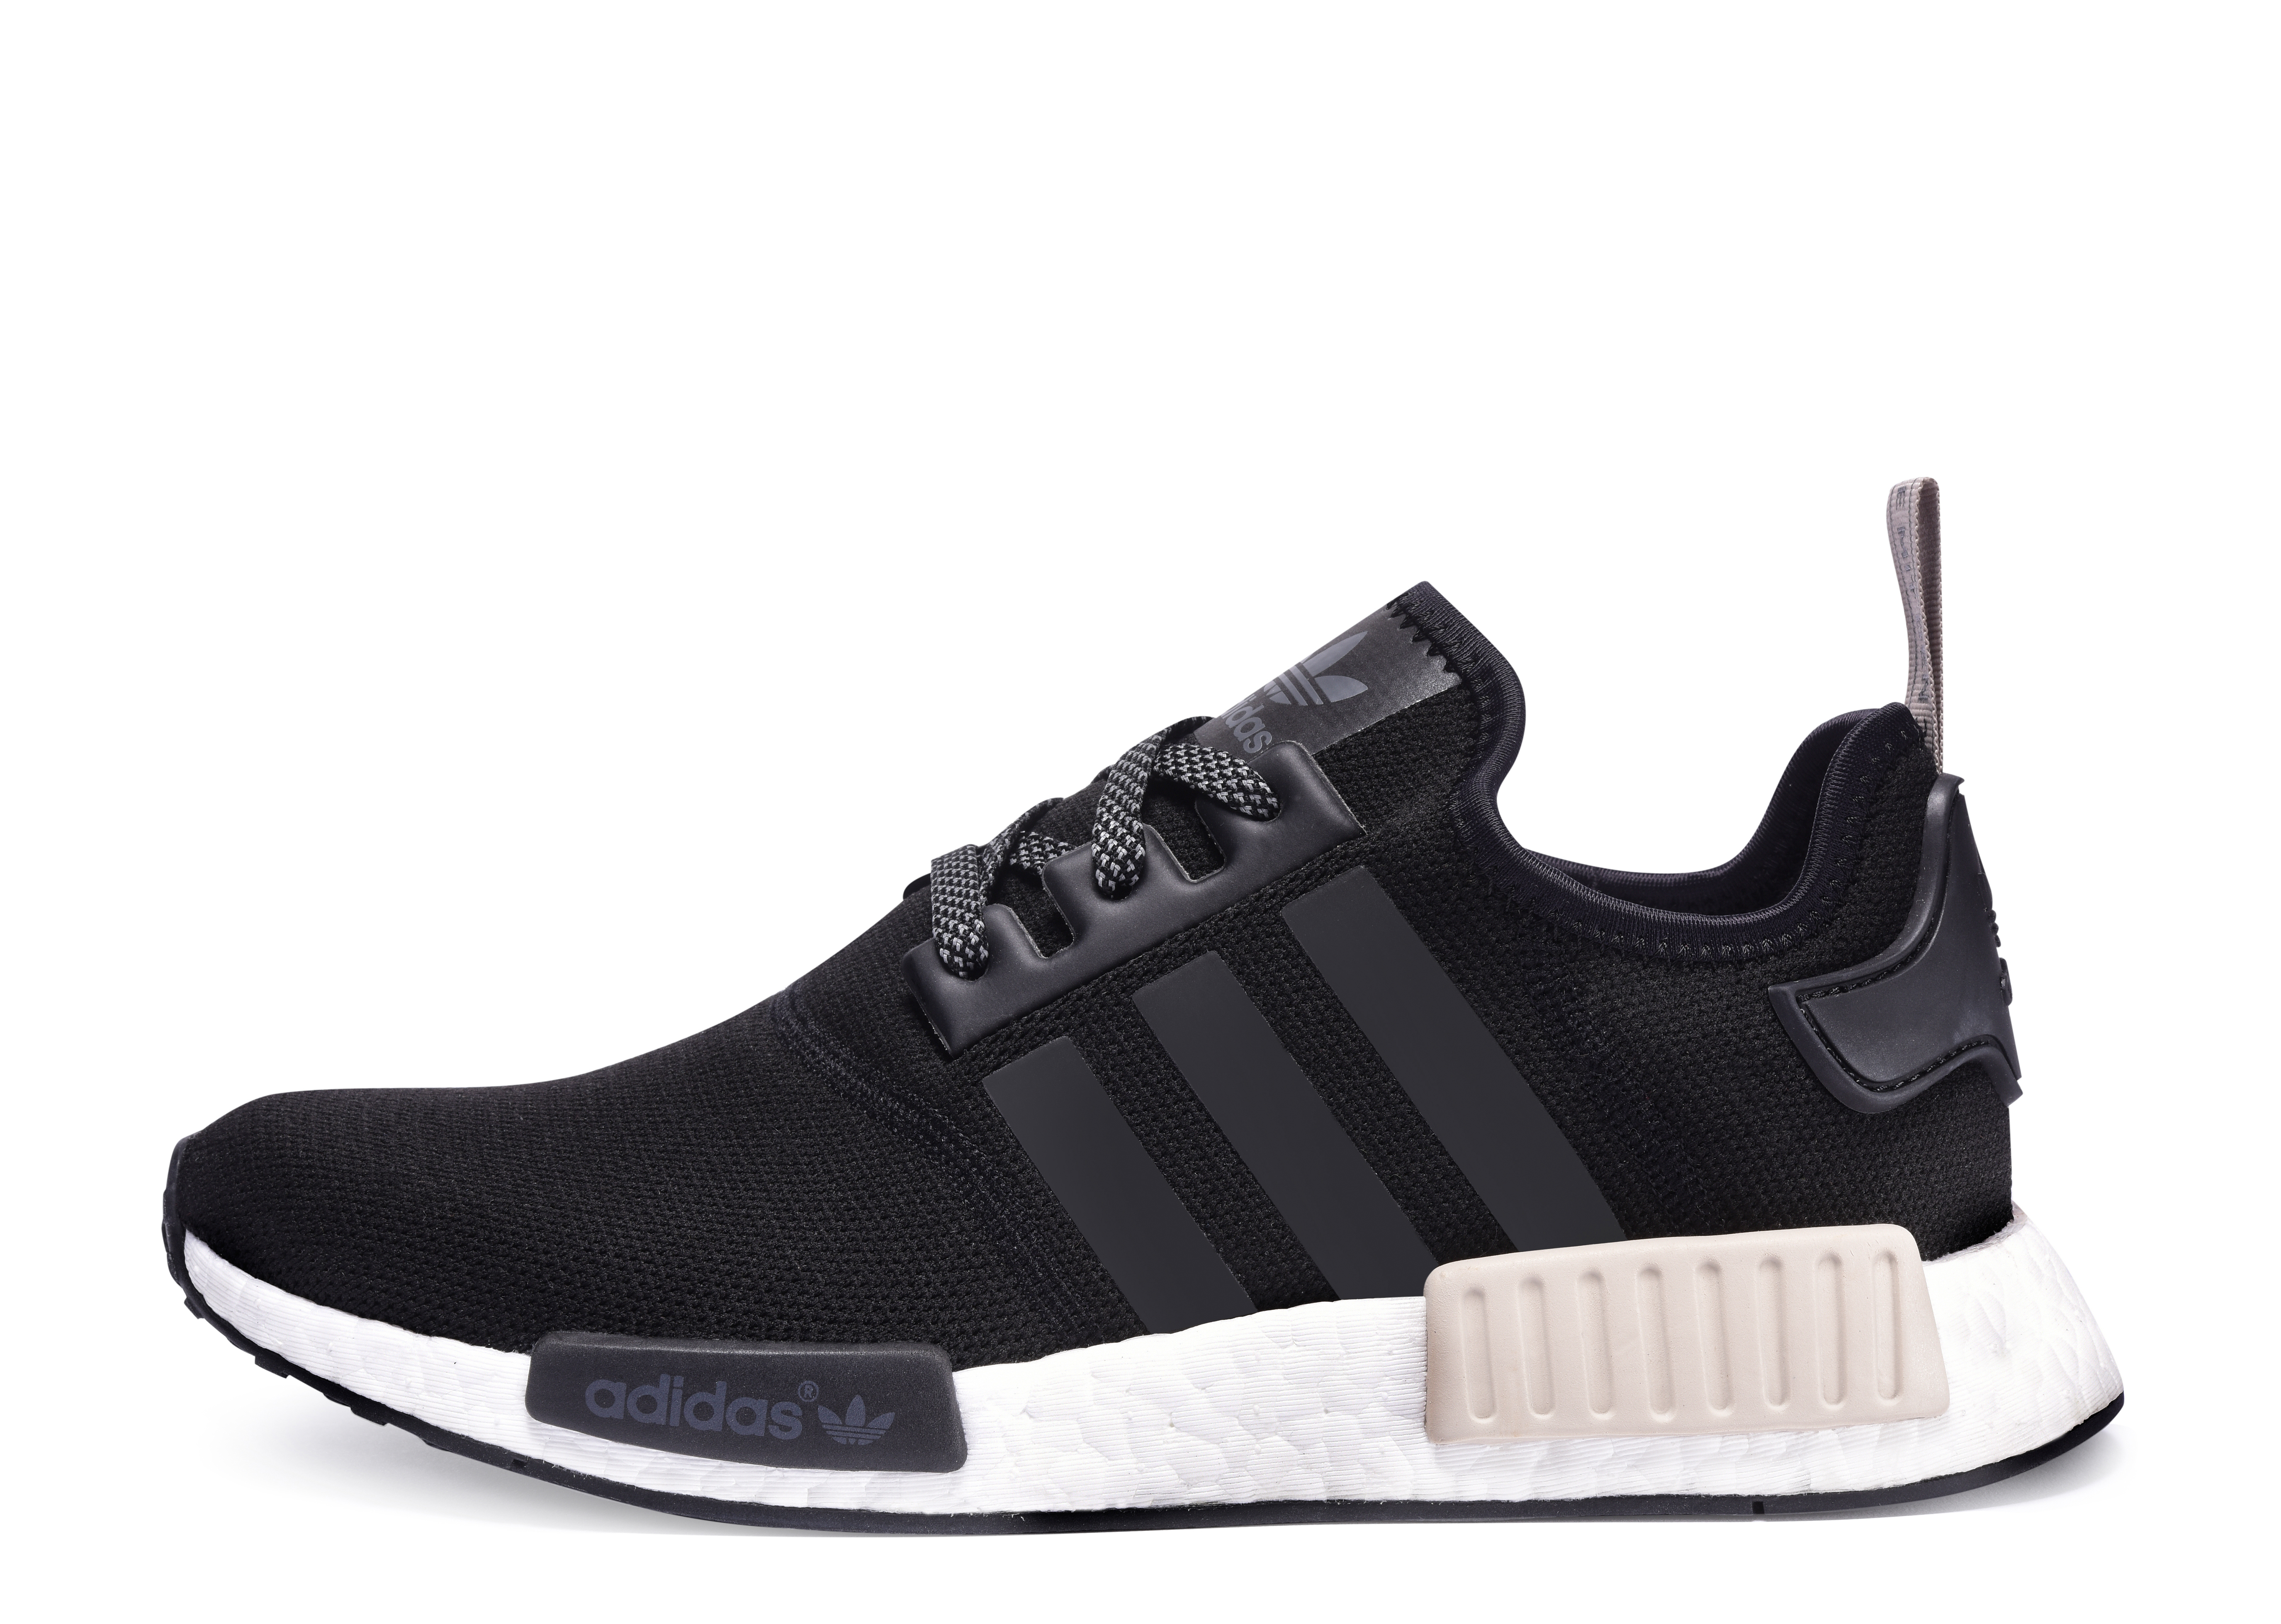 adidas NMD Black Black Light Brown